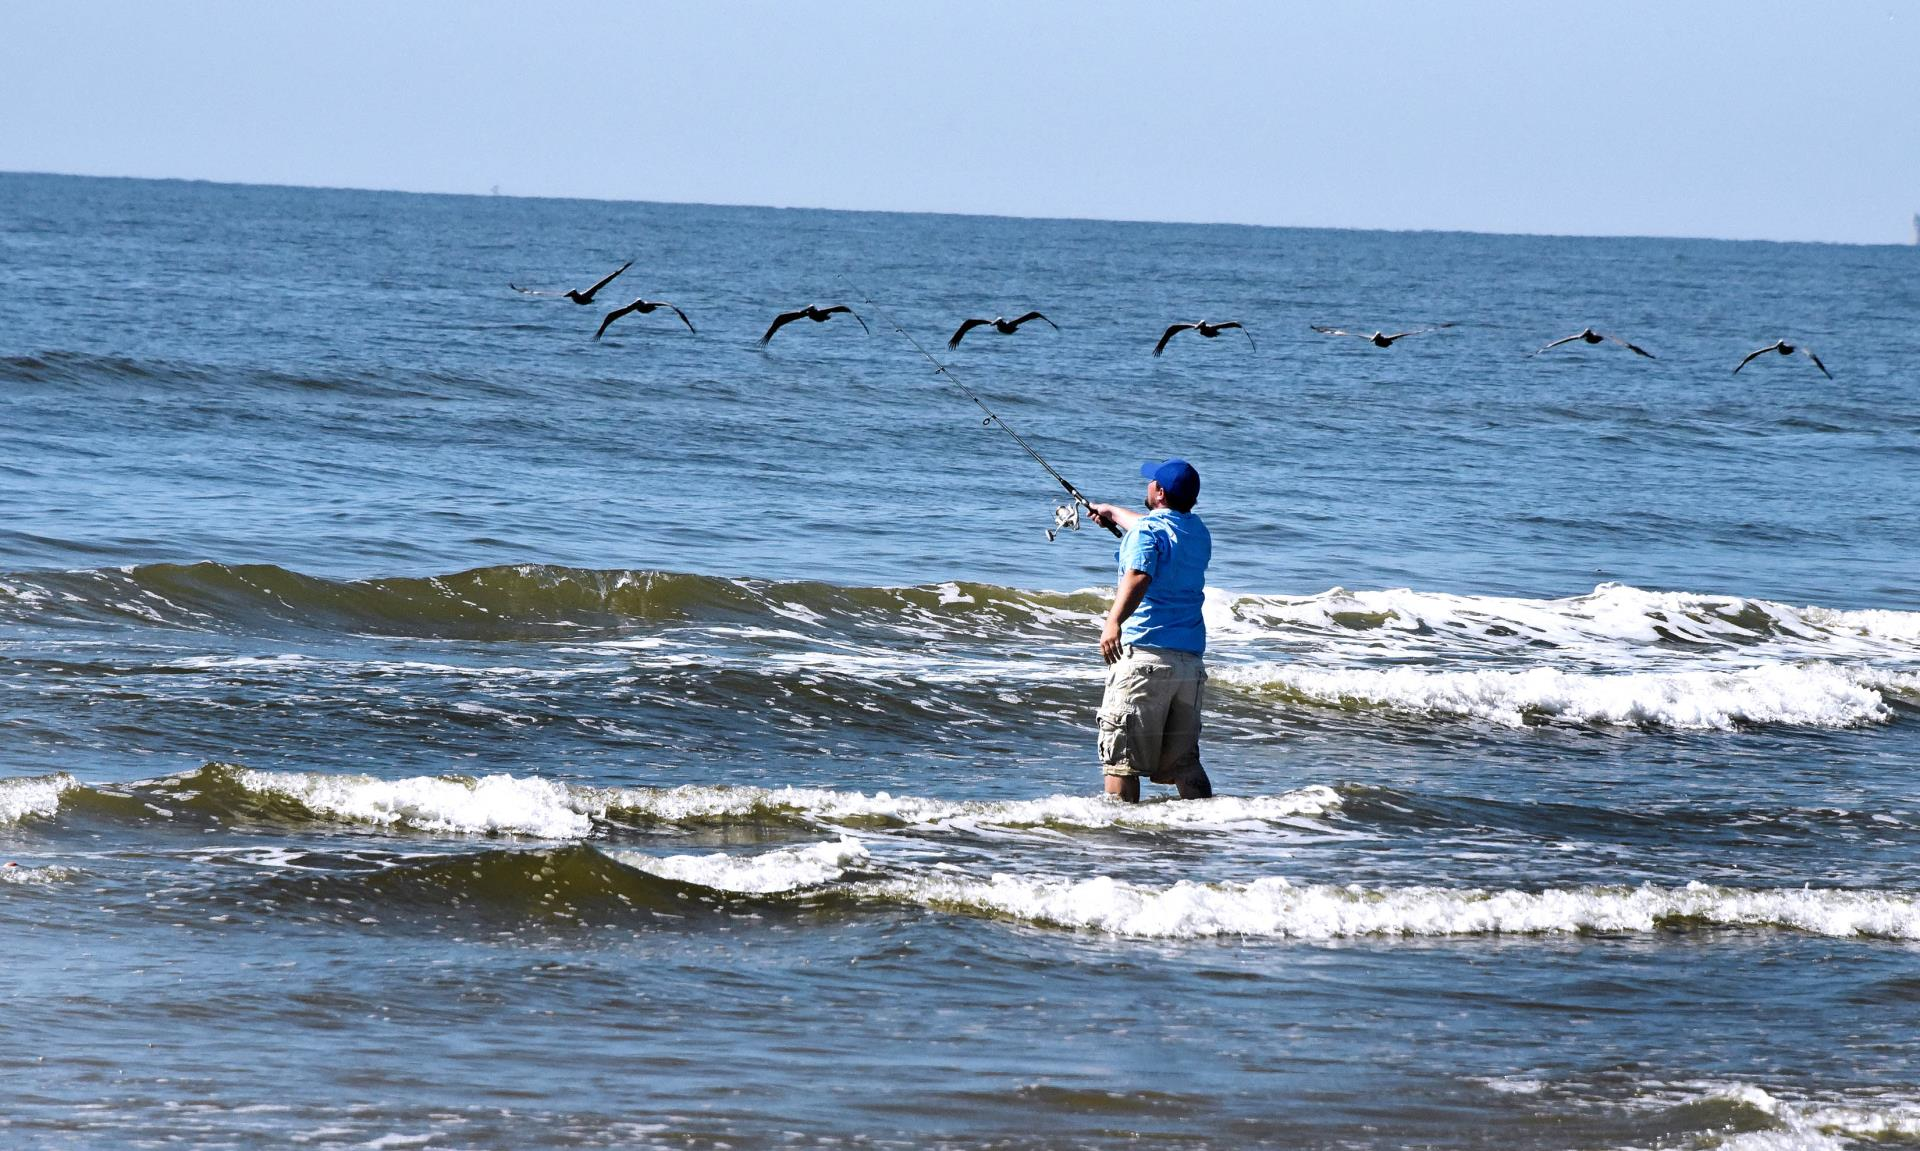 man fishing in surf, pelicans near HDR